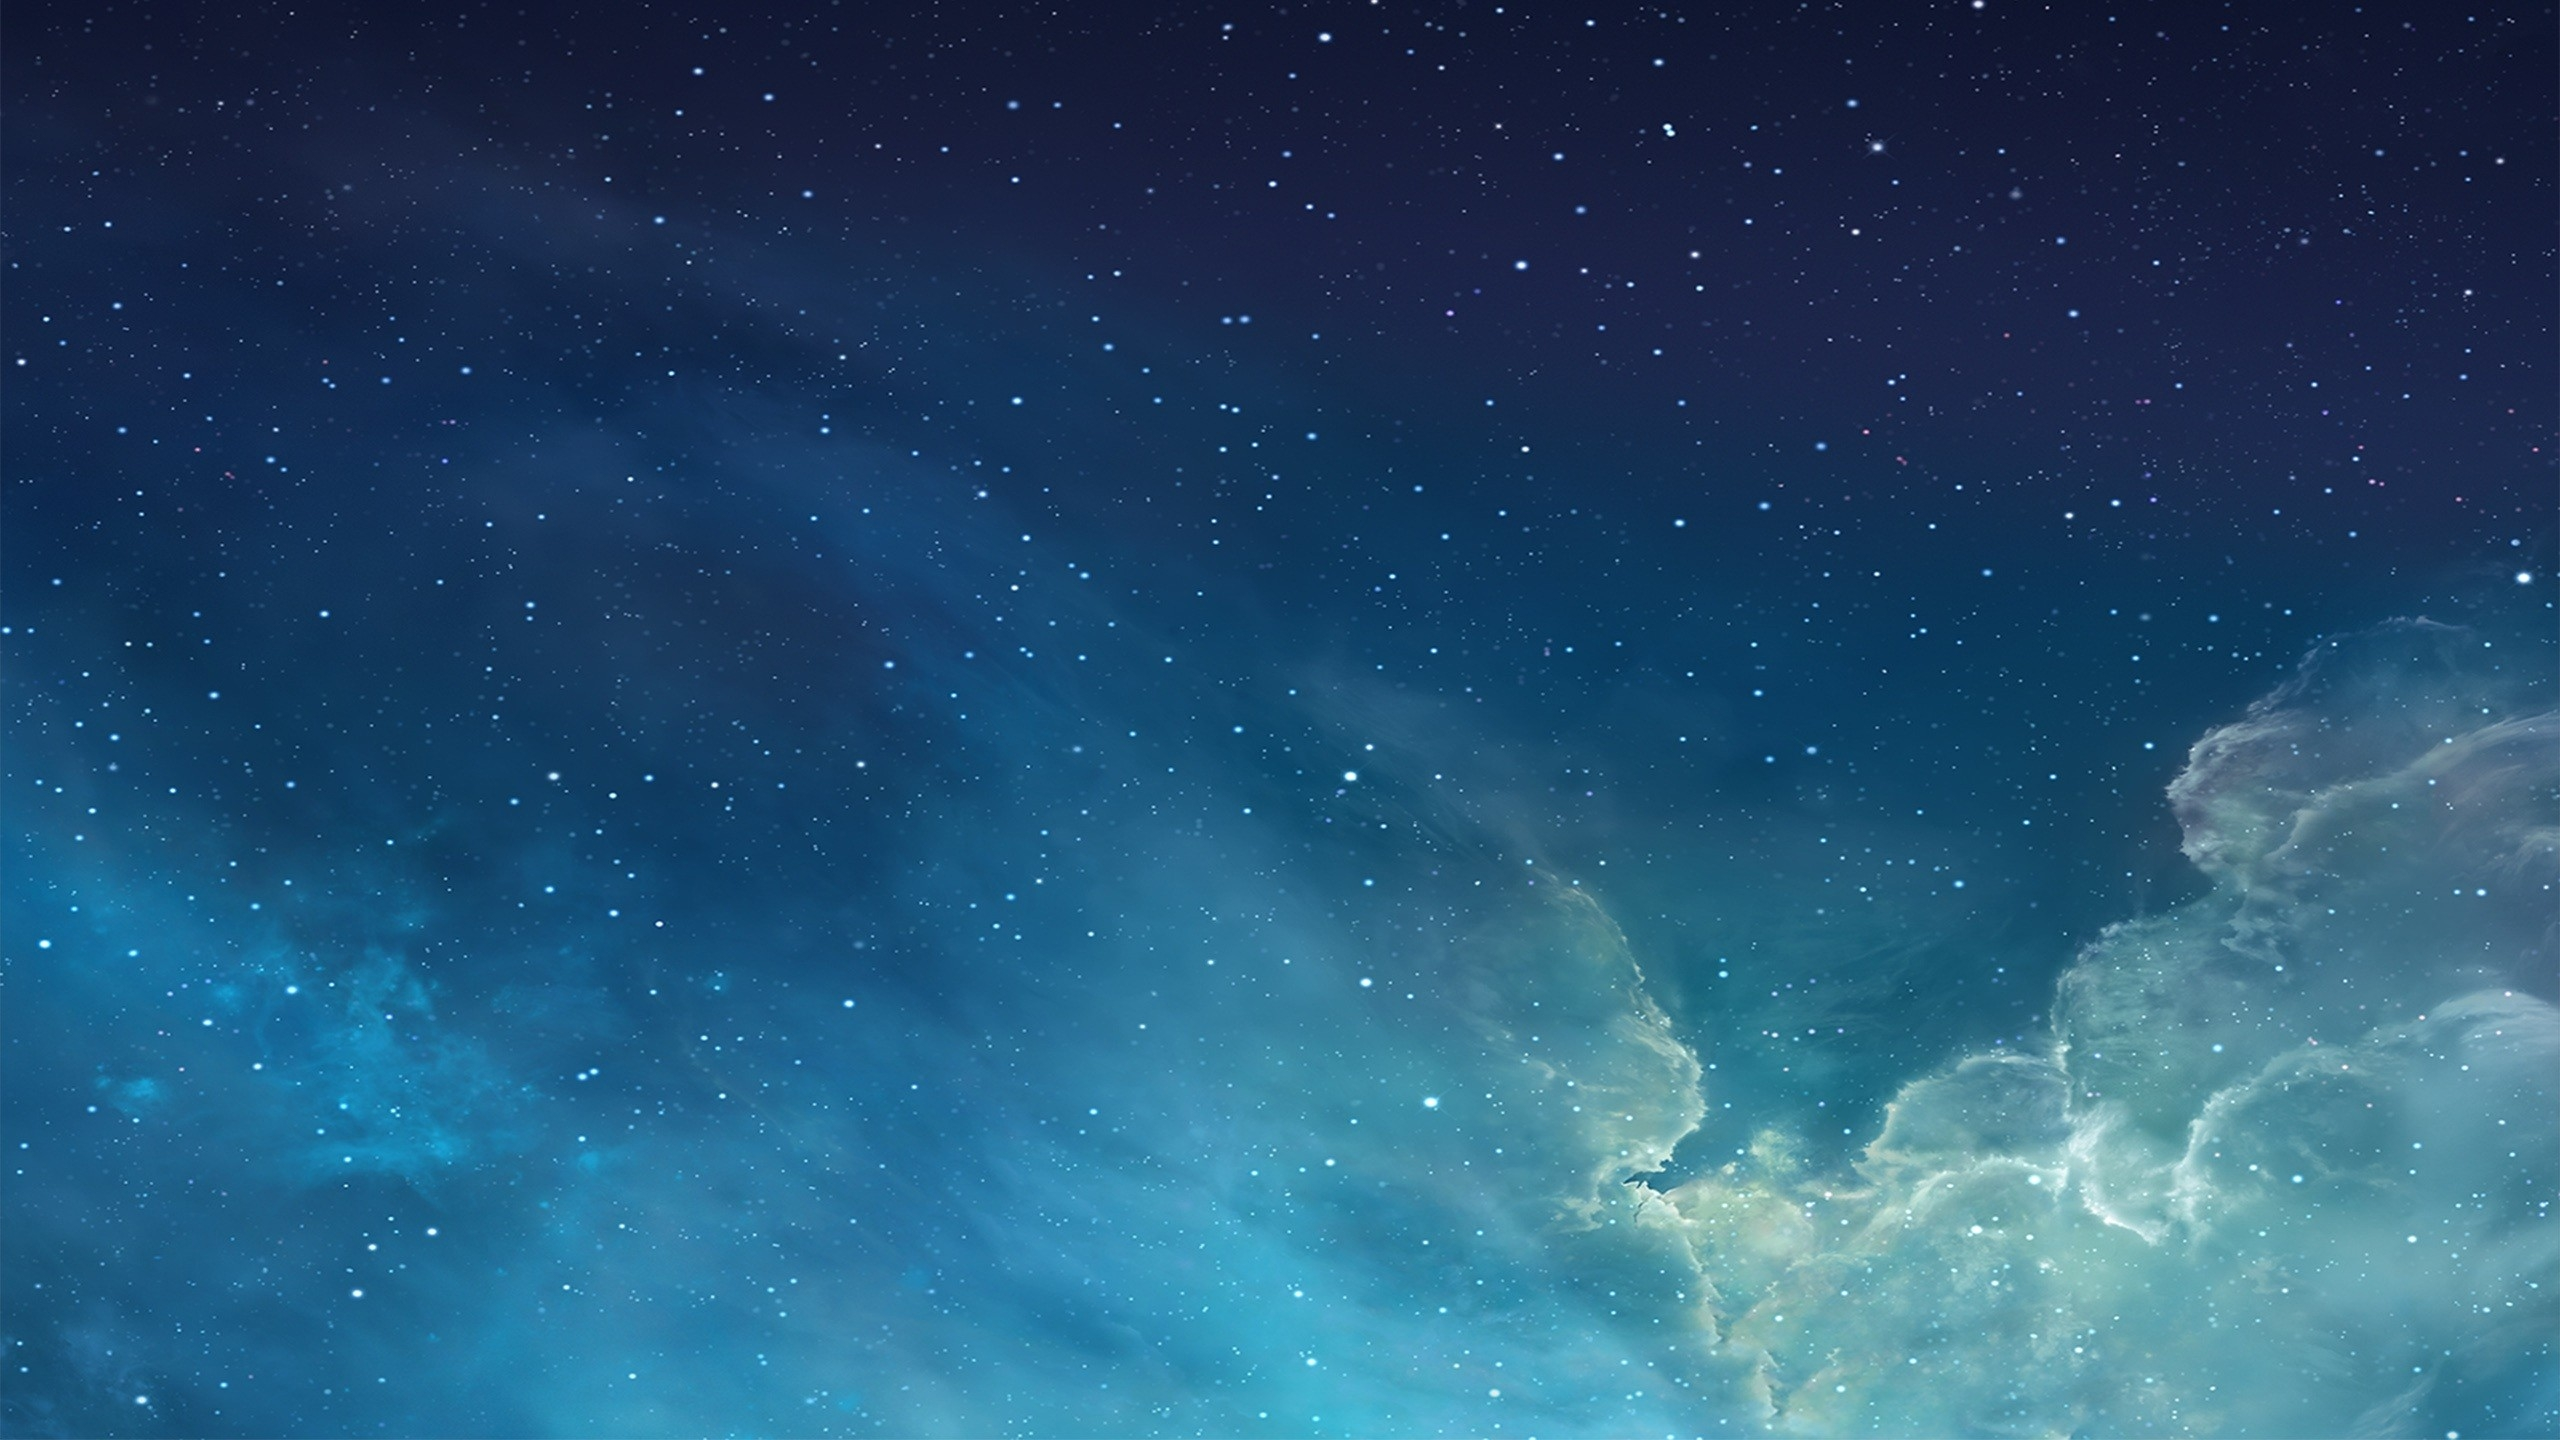 Blue Night Sky Mac Wallpaper Download